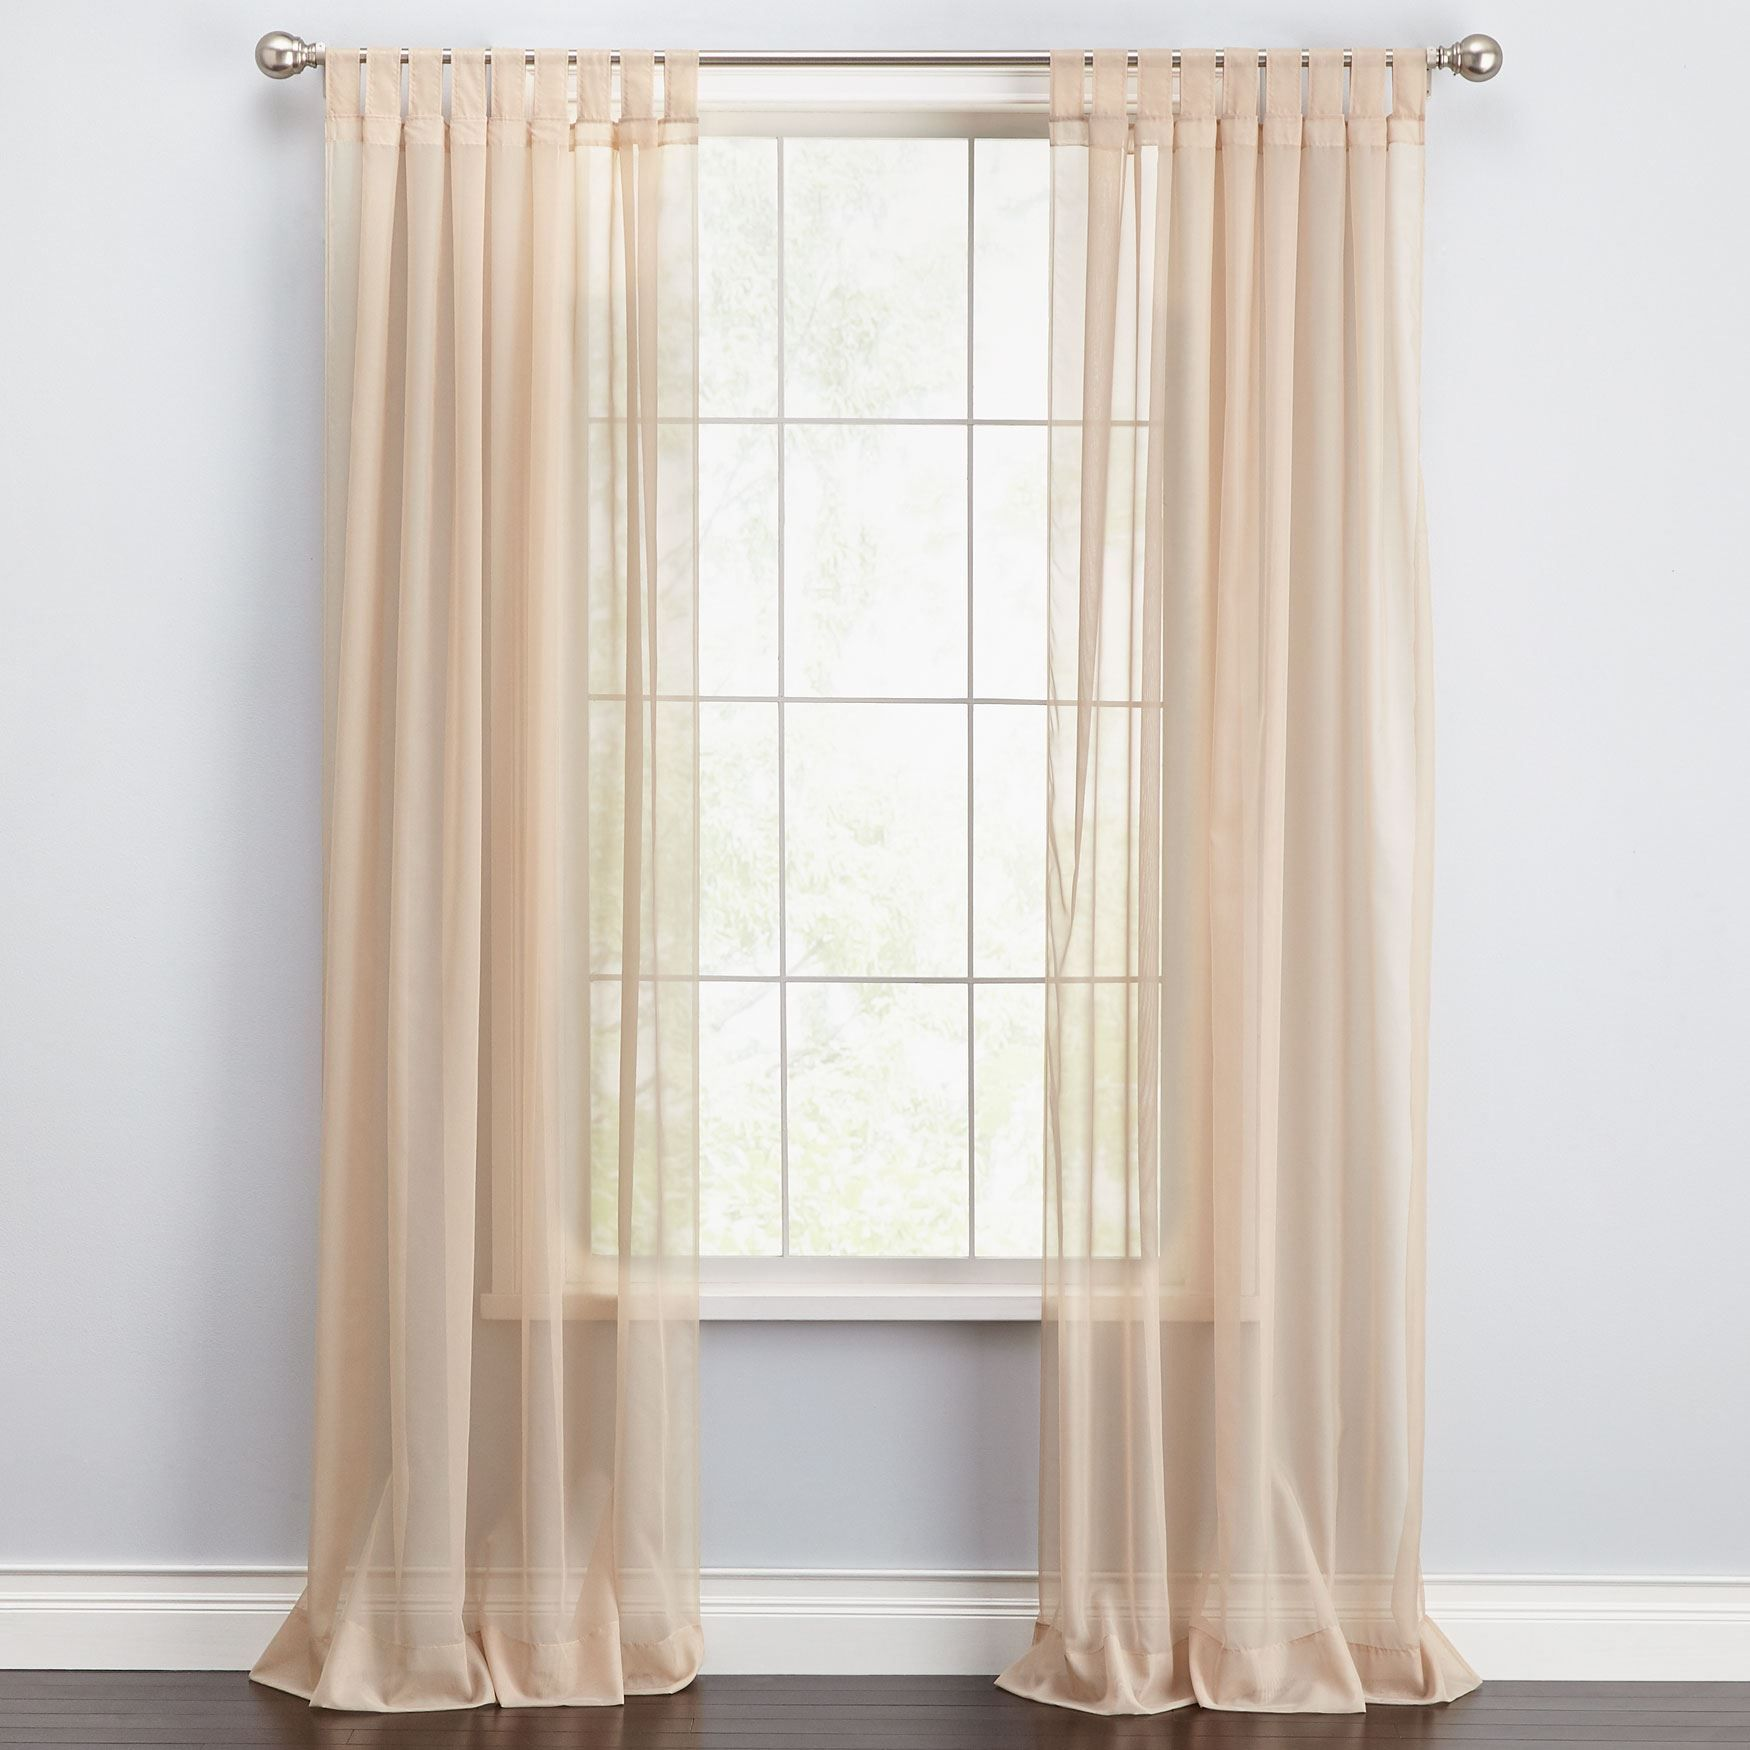 Sheer Curtains Are Prized For The Way They Gently Filter Light And Our Billowy Voile Curtains Do It Beautiful Indoor Outdoor Furniture Voile Curtains Curtains